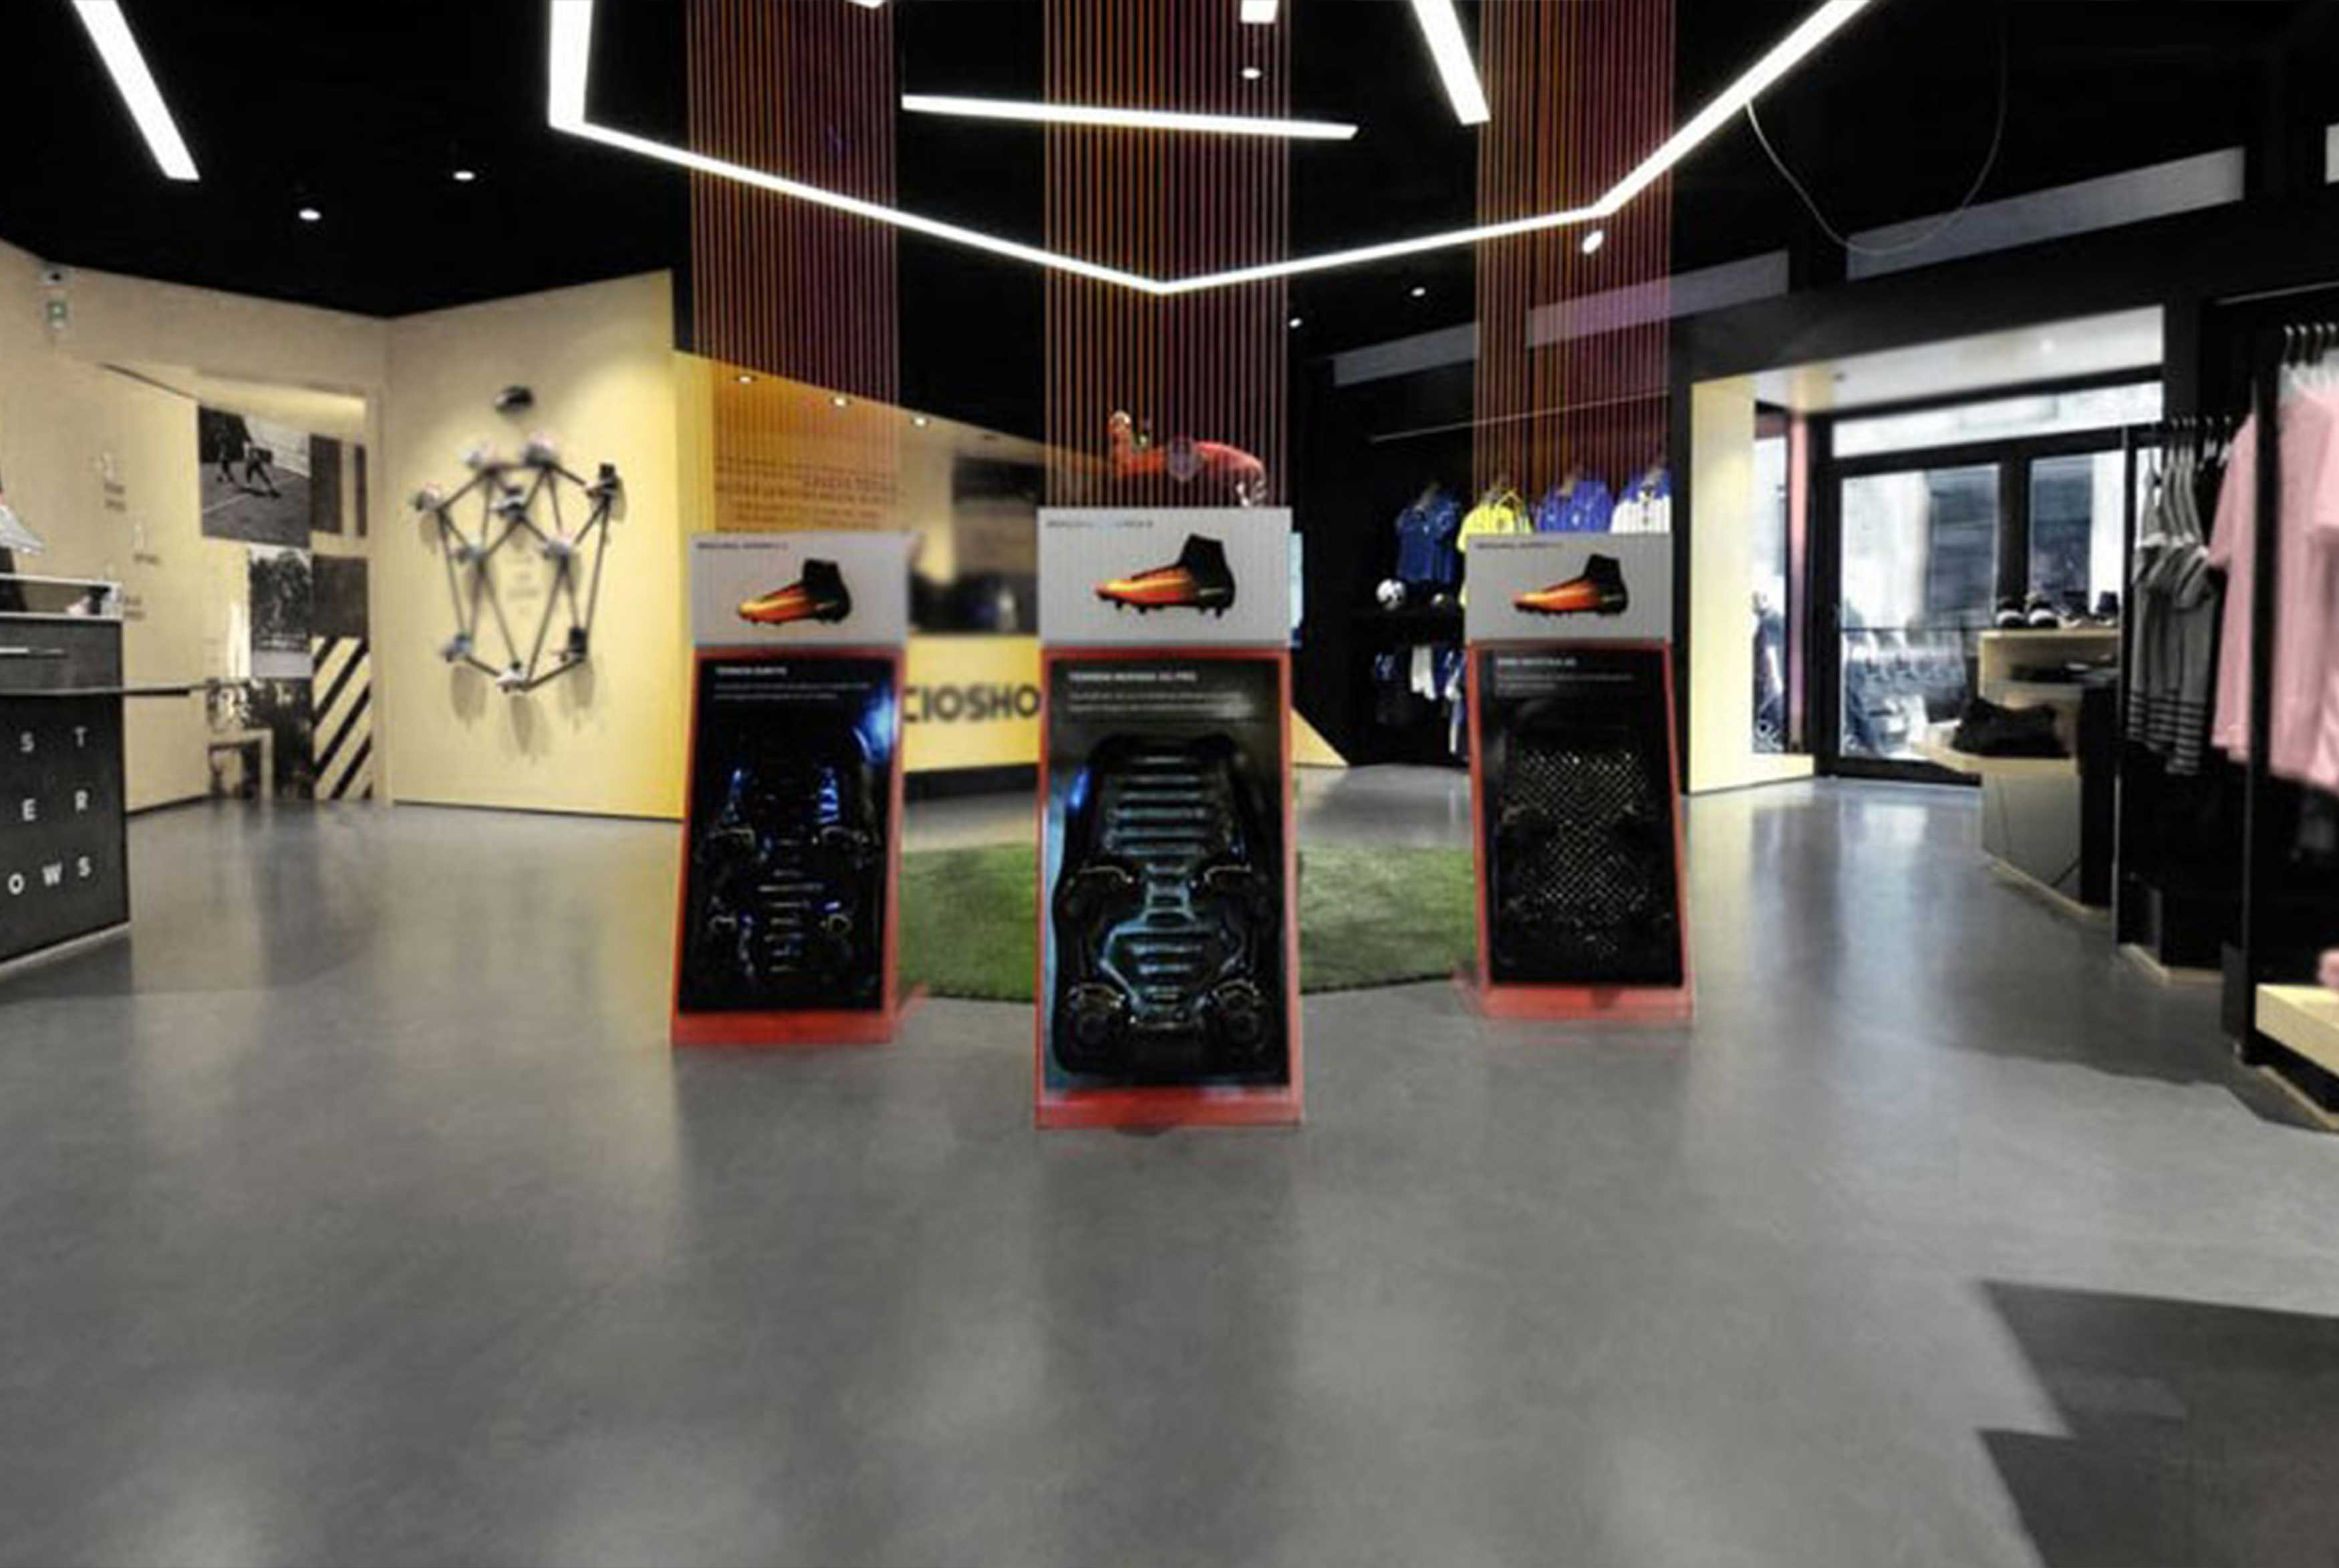 Calcioshop designers chose Screed by Chroma Global brand partner Artigo for concrete look